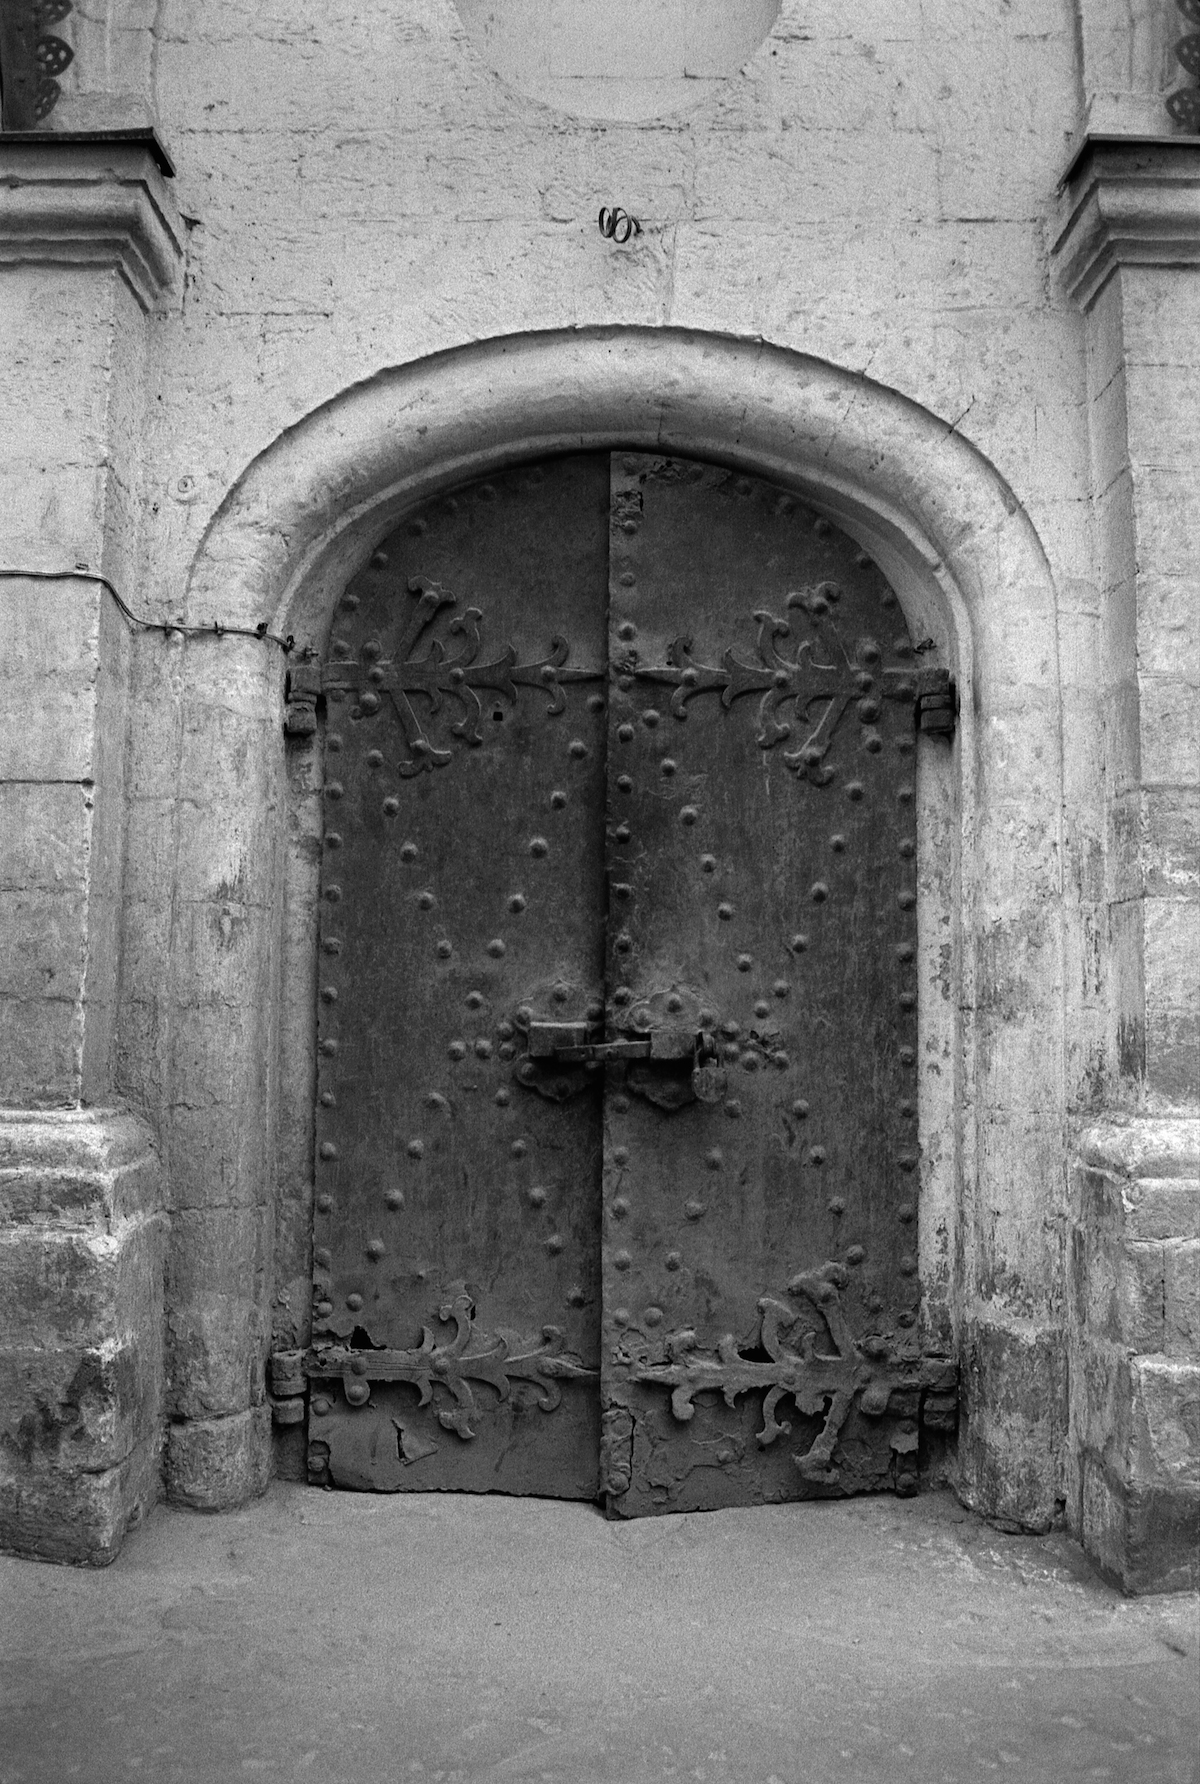 The doors of the ancient monastery. Religious buildings were in a poor state as USSR didn't tolerate the religion in any way.